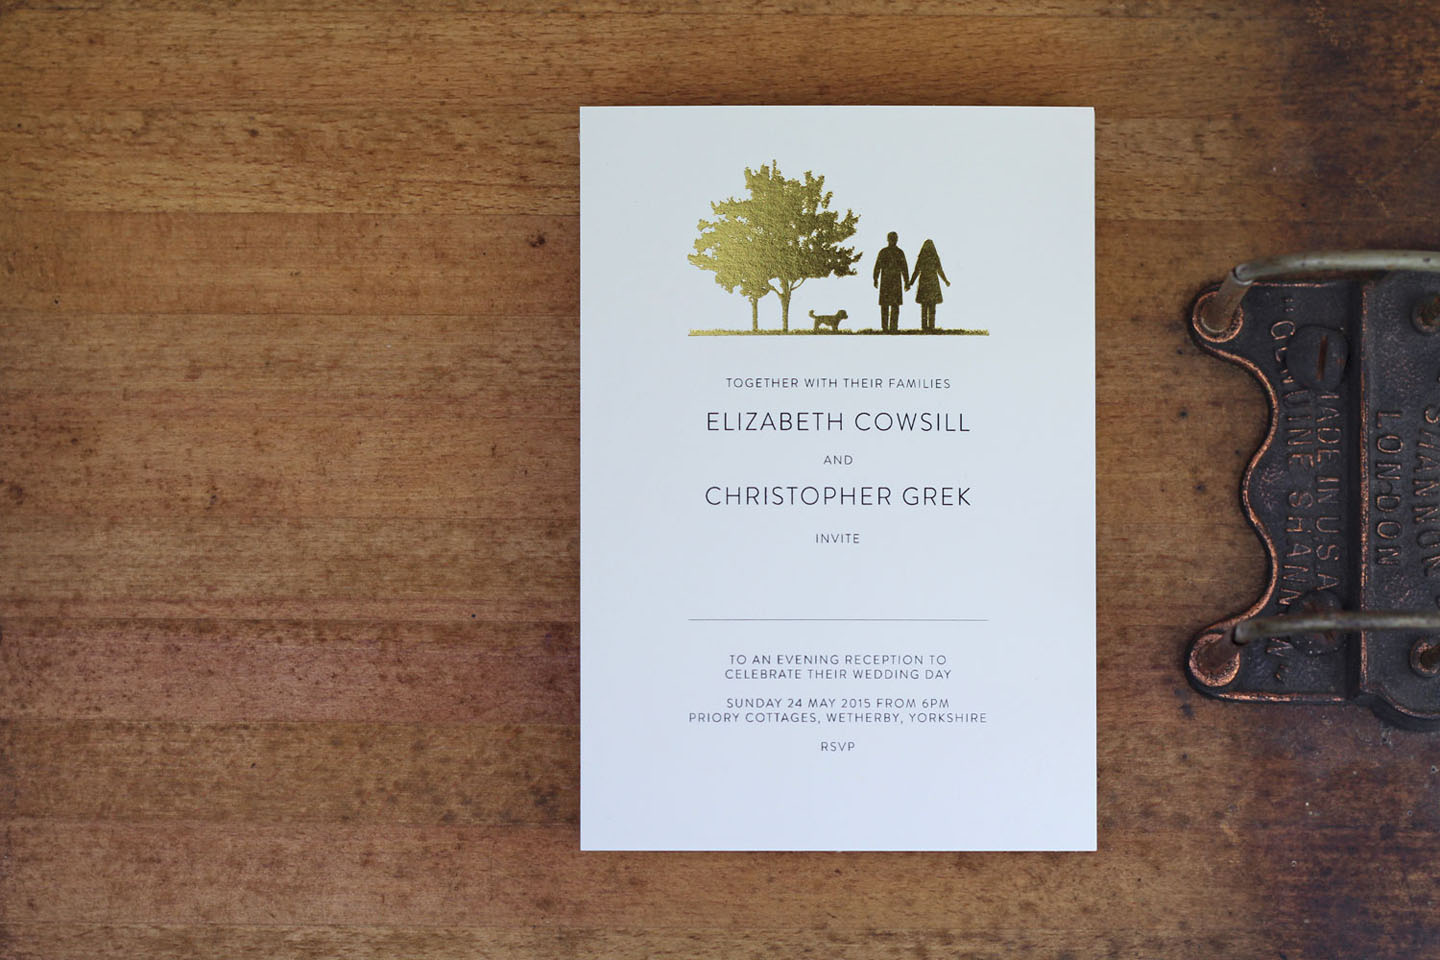 Gold Foil Wedding Invitations - Country Walk Wedding Invitation - Autumn Wedding Ideas - Luxury Wedding Stationery by the Foil Invite Company